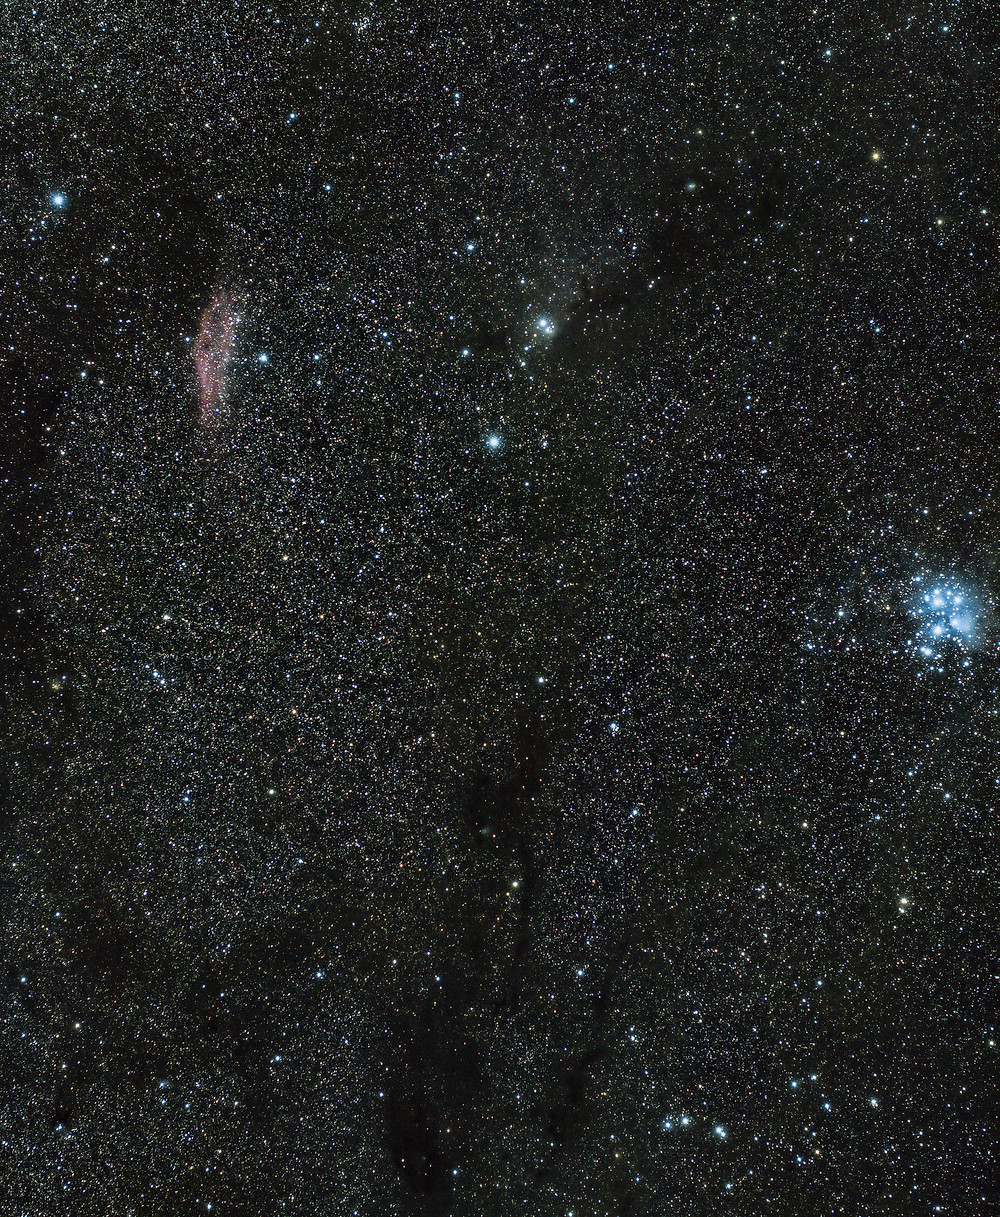 The Pleiades and The California Nebula photographed with a Canon DSLR camera t3i and a small star tracker from the Nevada desert.